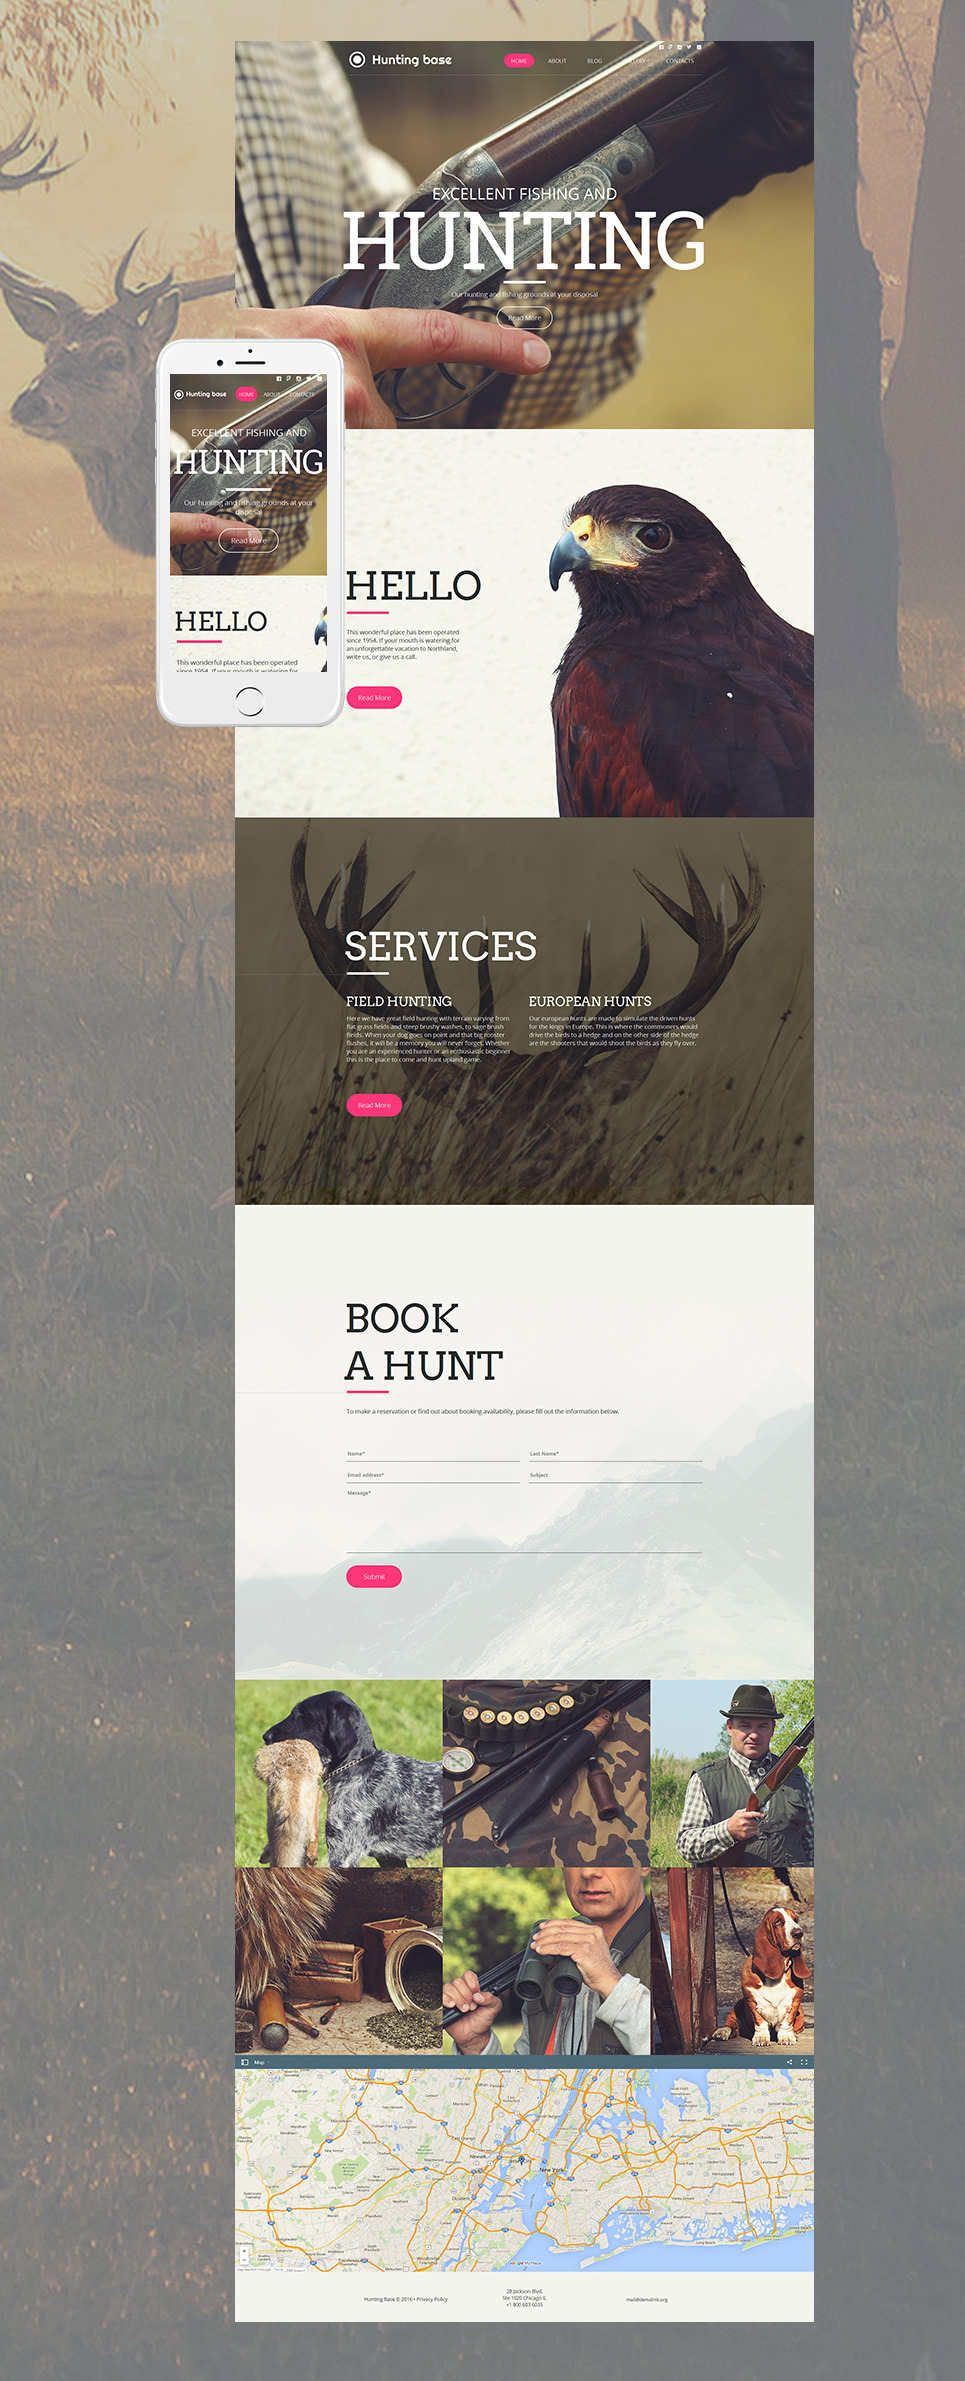 Hunting Moto CMS HTML Template New Screenshots BIG